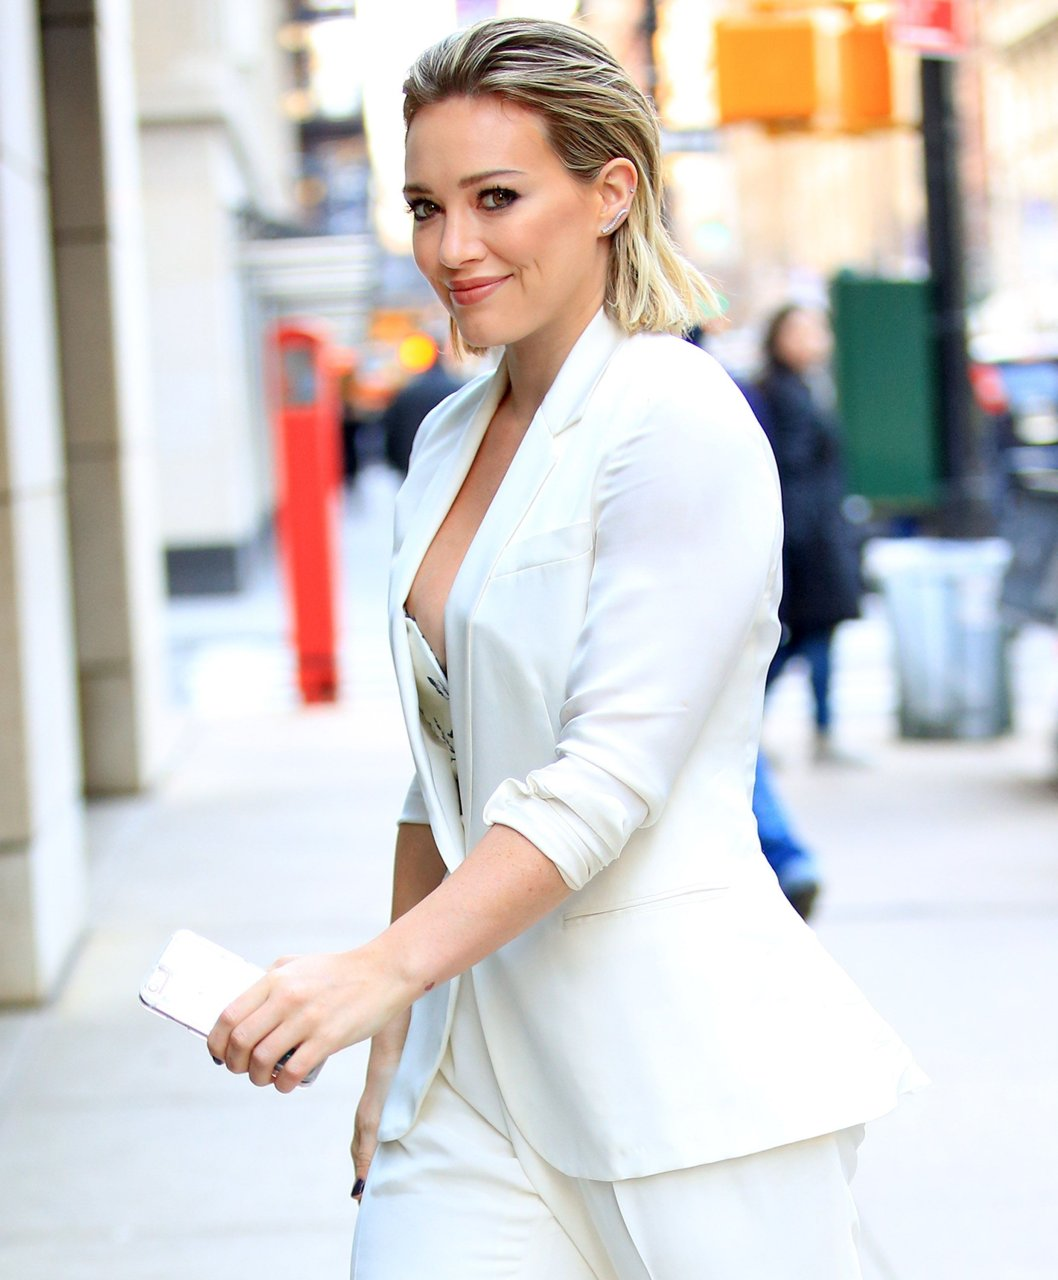 Wonderful hilary duff leaked pictures